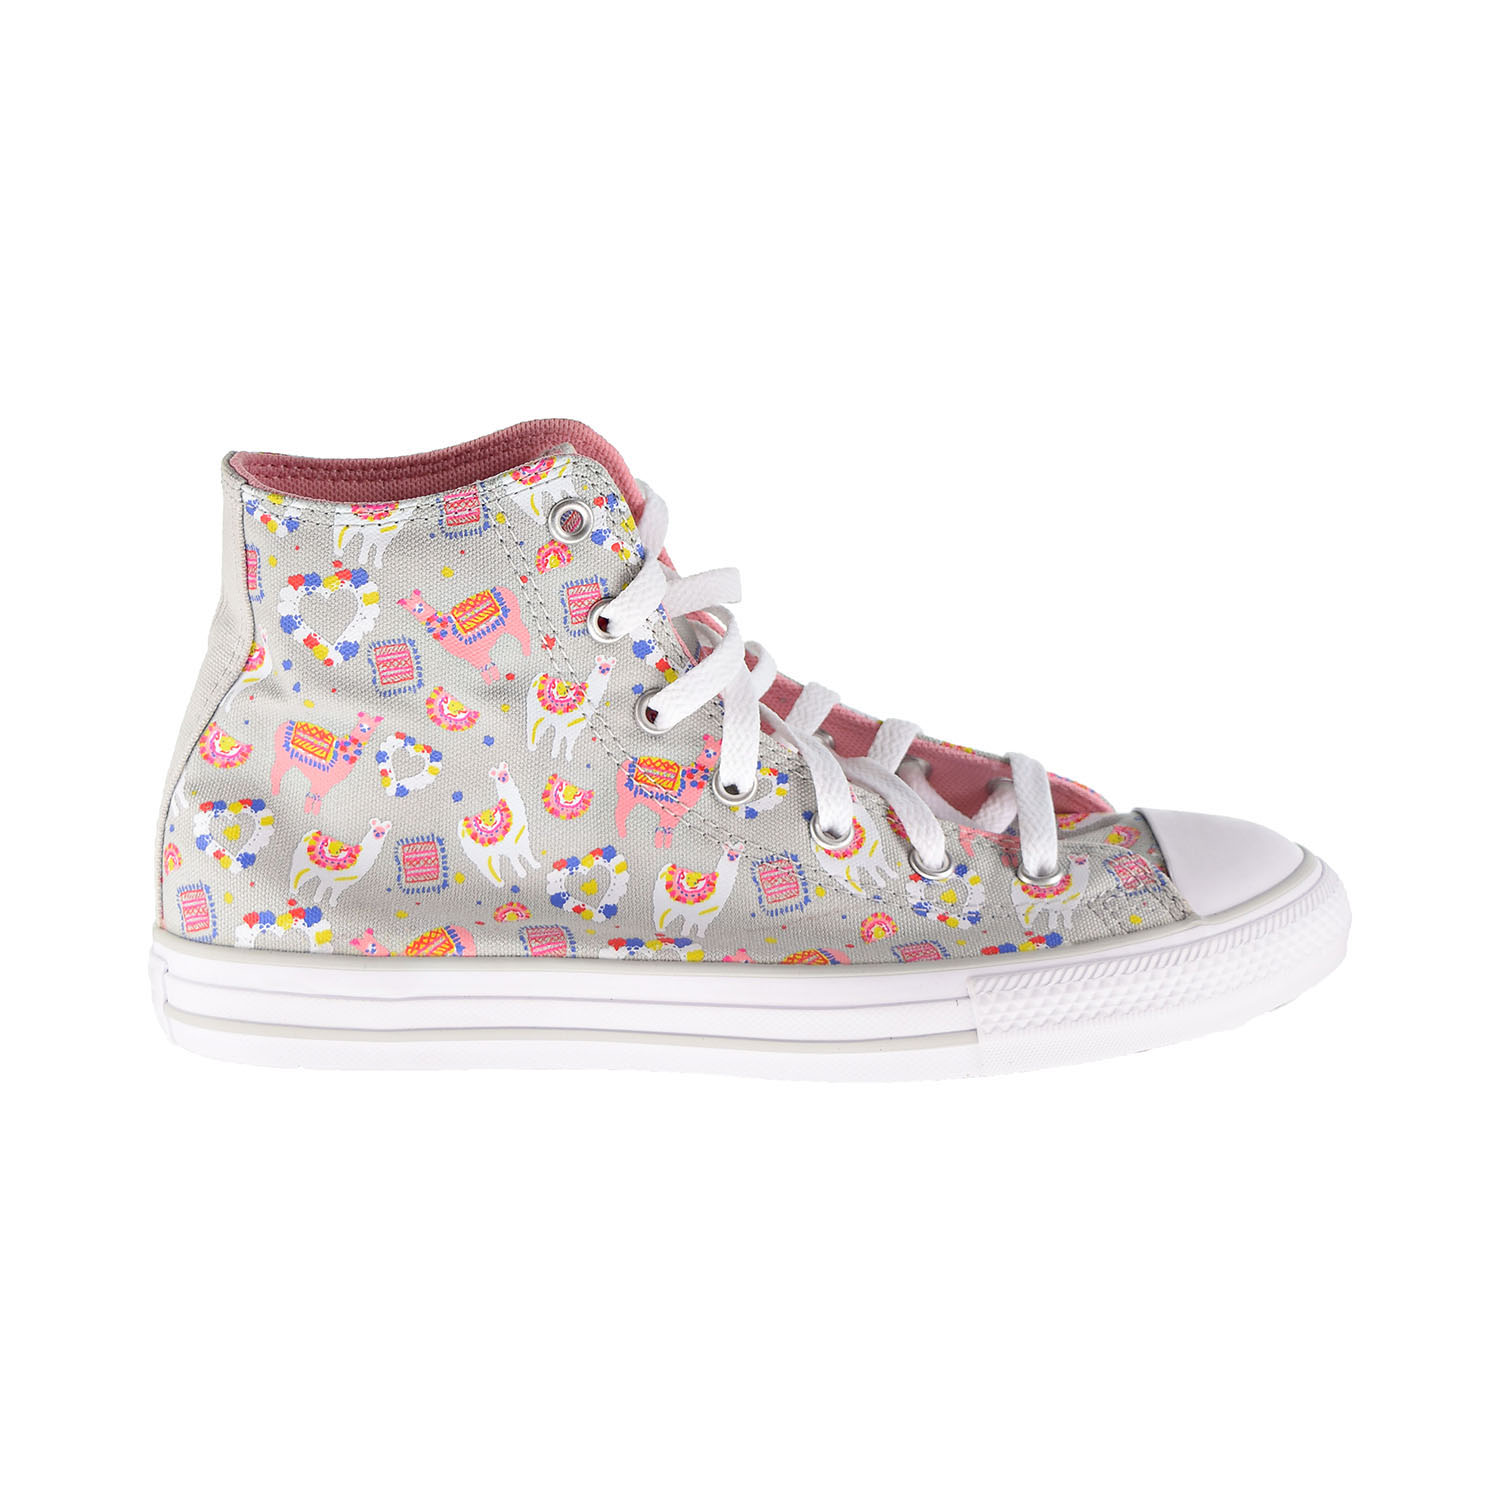 Details about Converse Chuck Taylor All Star Llama Party Hi Kids' Shoes Mouse Pink 666293F